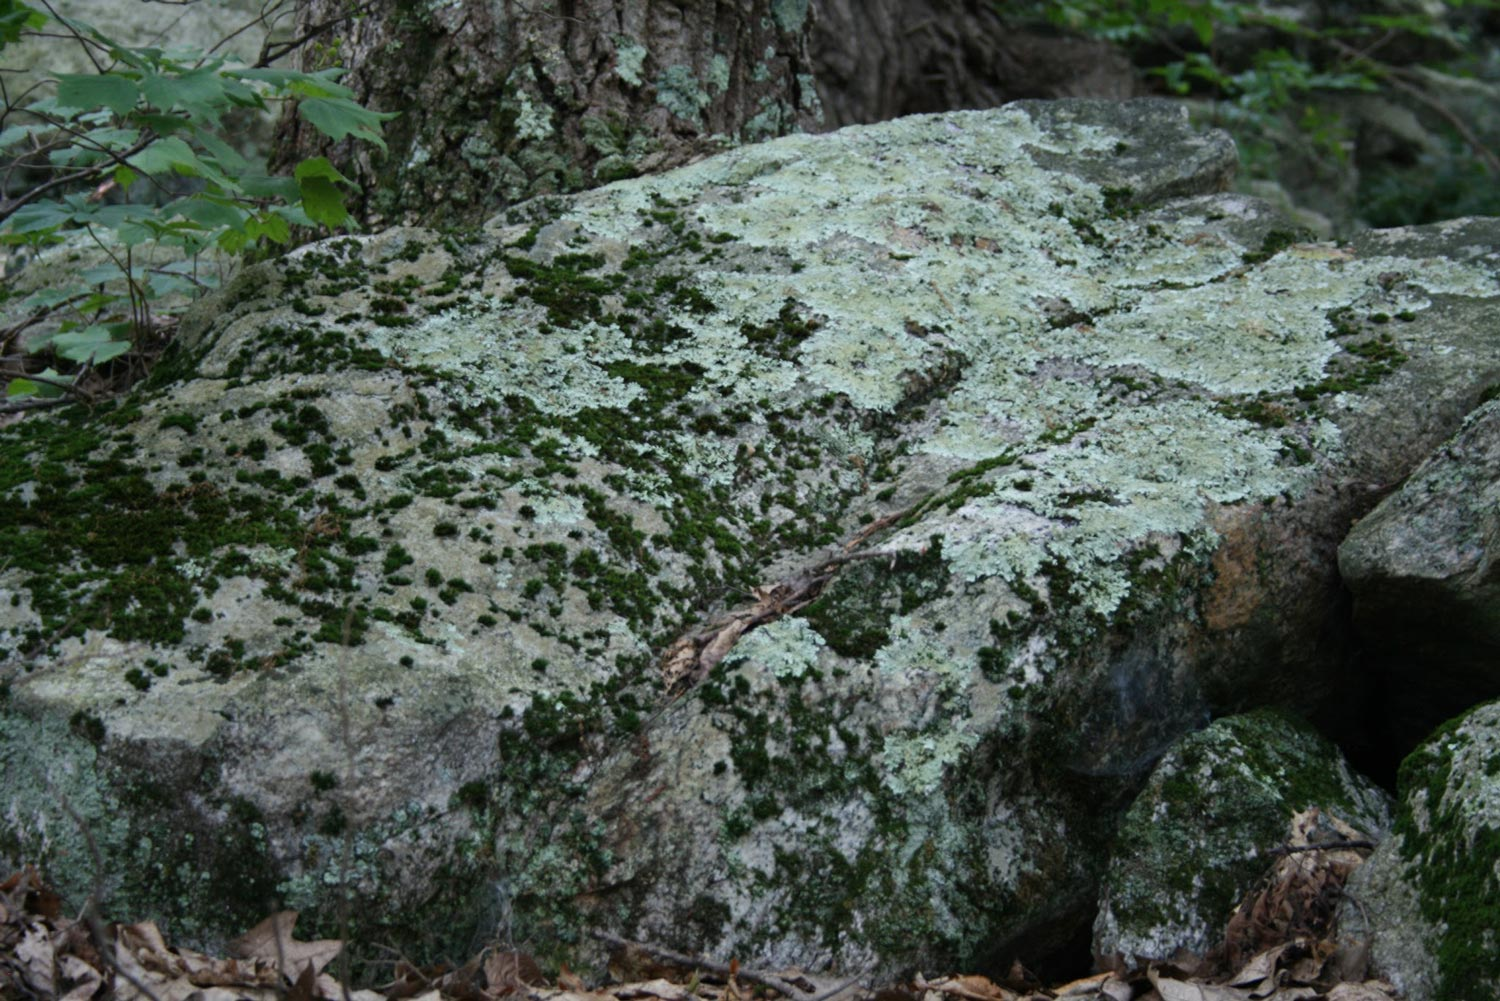 Lichens and moss on granite monoliths